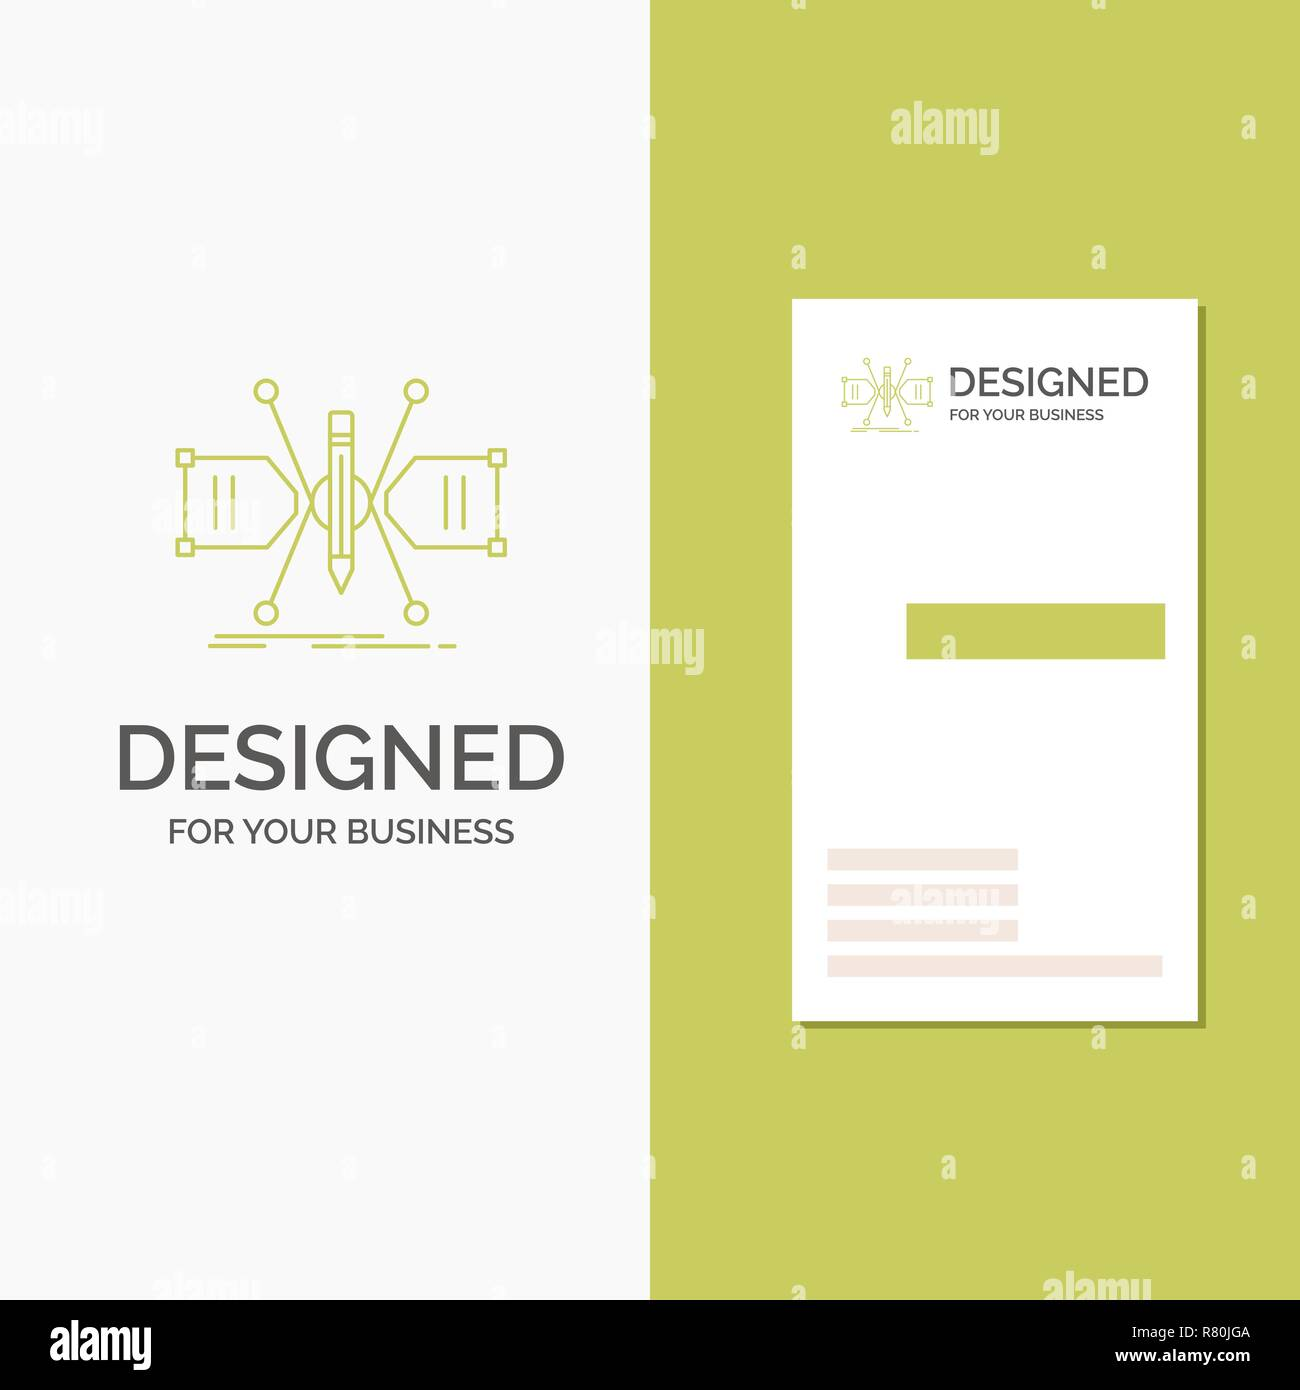 business logo for architect constructing grid sketch structure